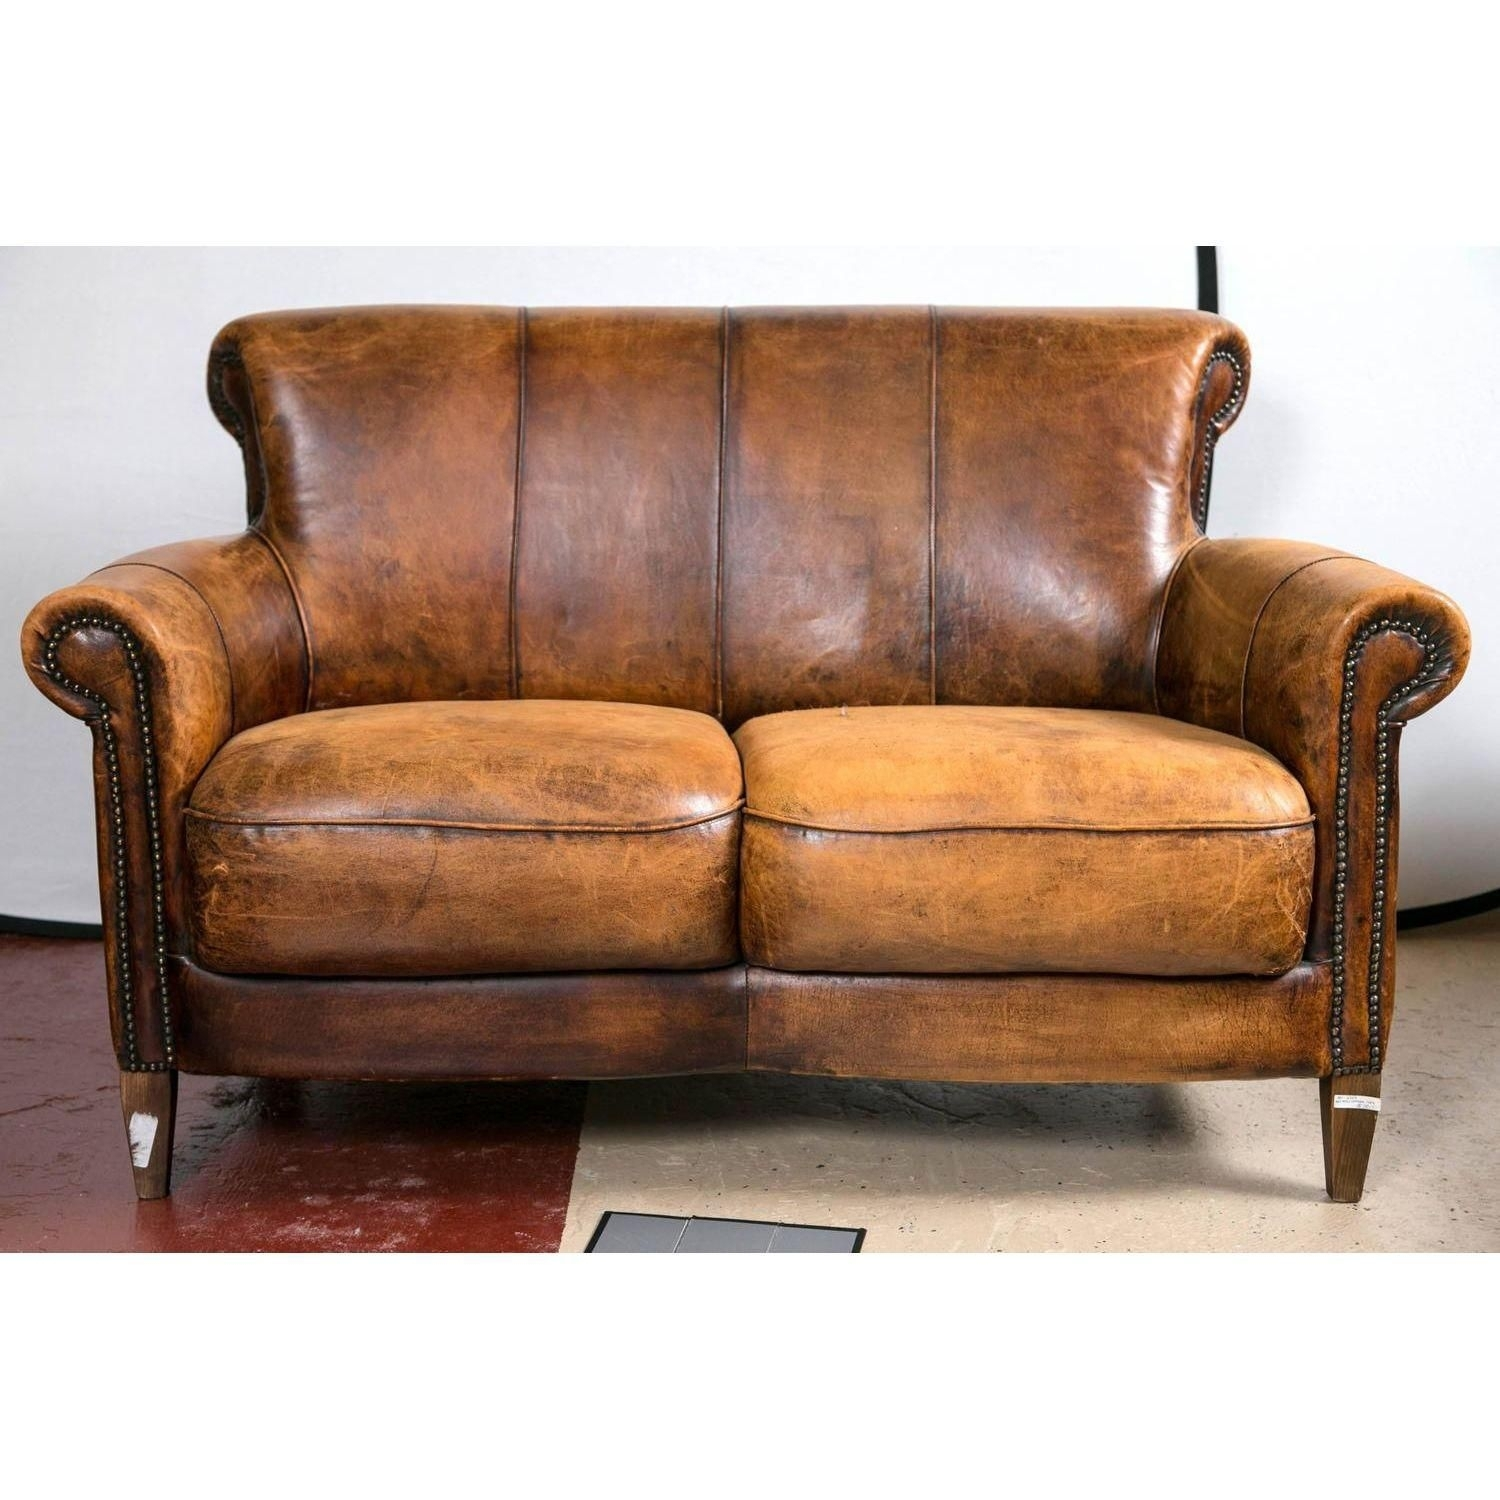 Vintage French Distressed Art Deco Leather Sofa | Leather Sofas, Art Regarding Art Deco Sofas (Image 10 of 10)